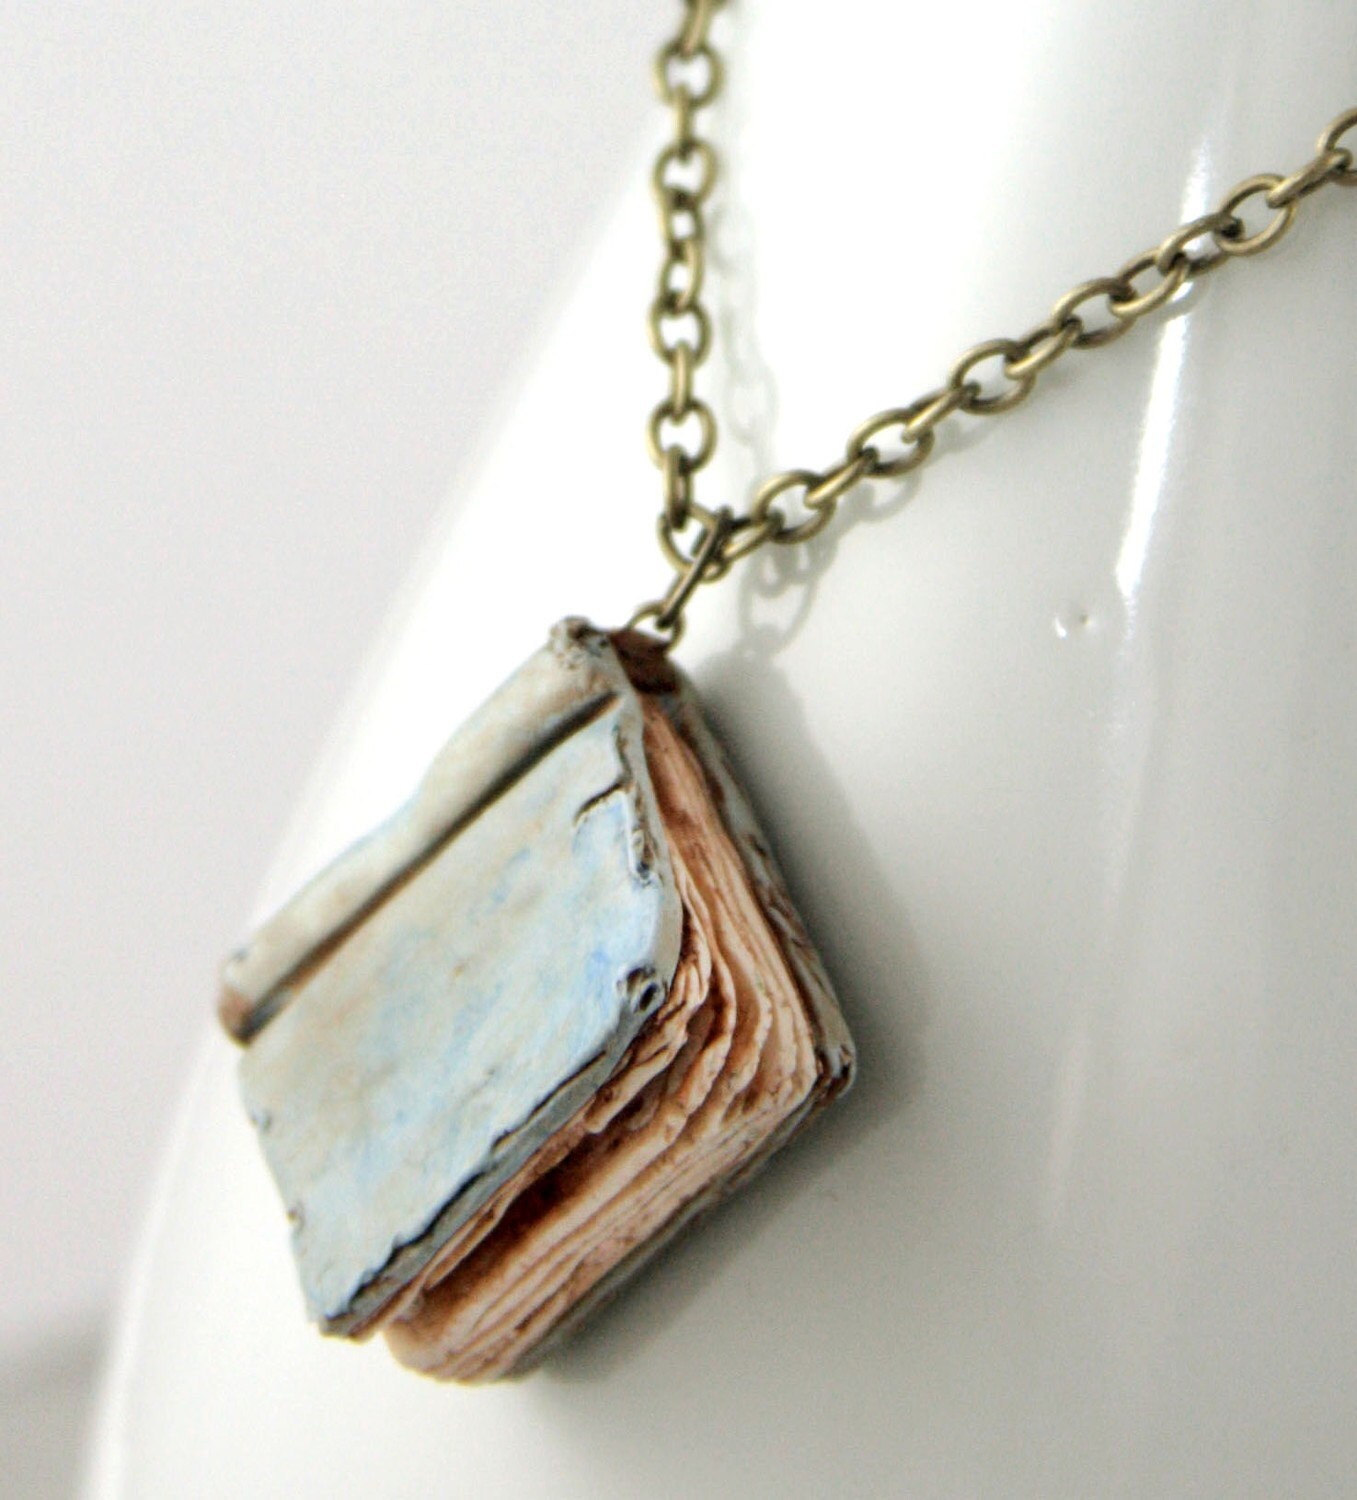 Book Cover Handmade Jewellery : Beloved book necklace jewelry handmade by neverlandjewelry